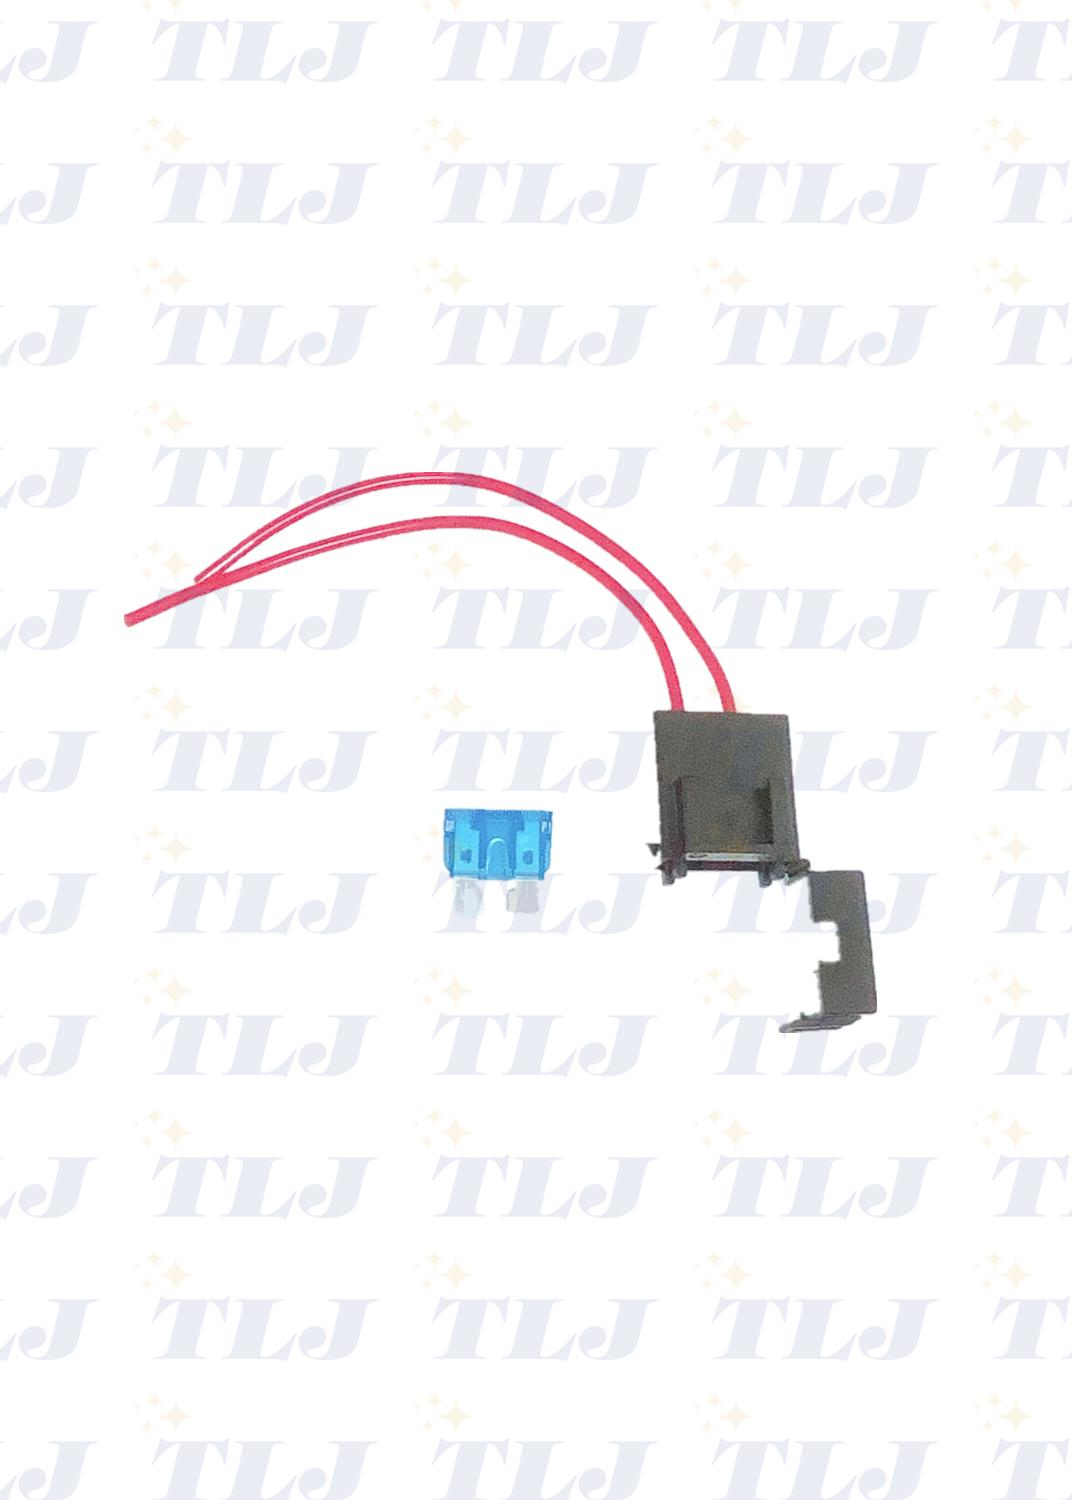 hight resolution of product details of tlj fuse box for motorcycle universal w free fuse